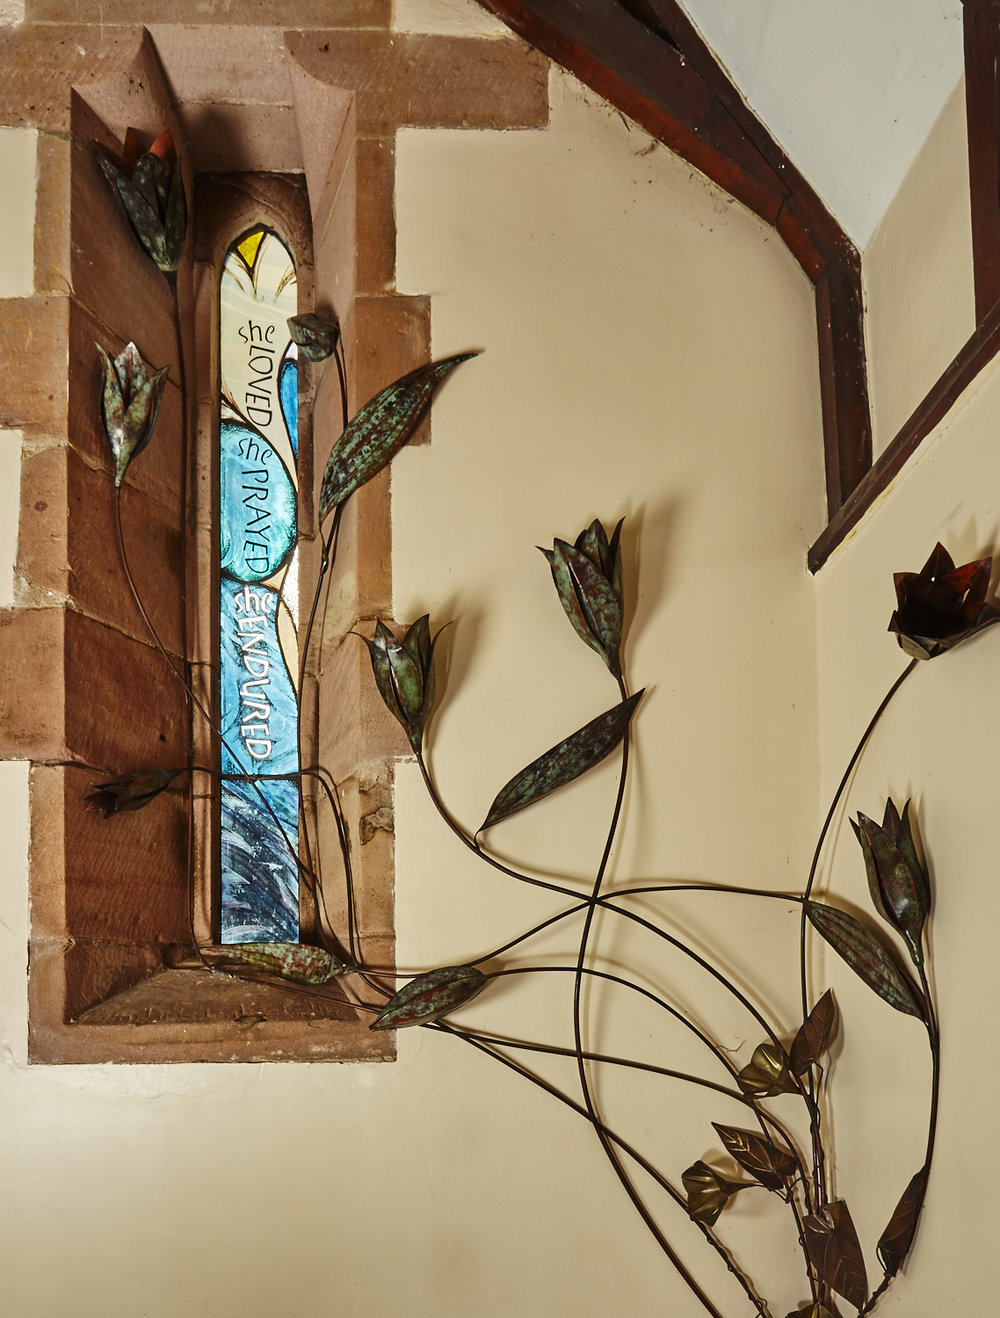 Centenary Window & Sculpture in memory of Josephine Butler